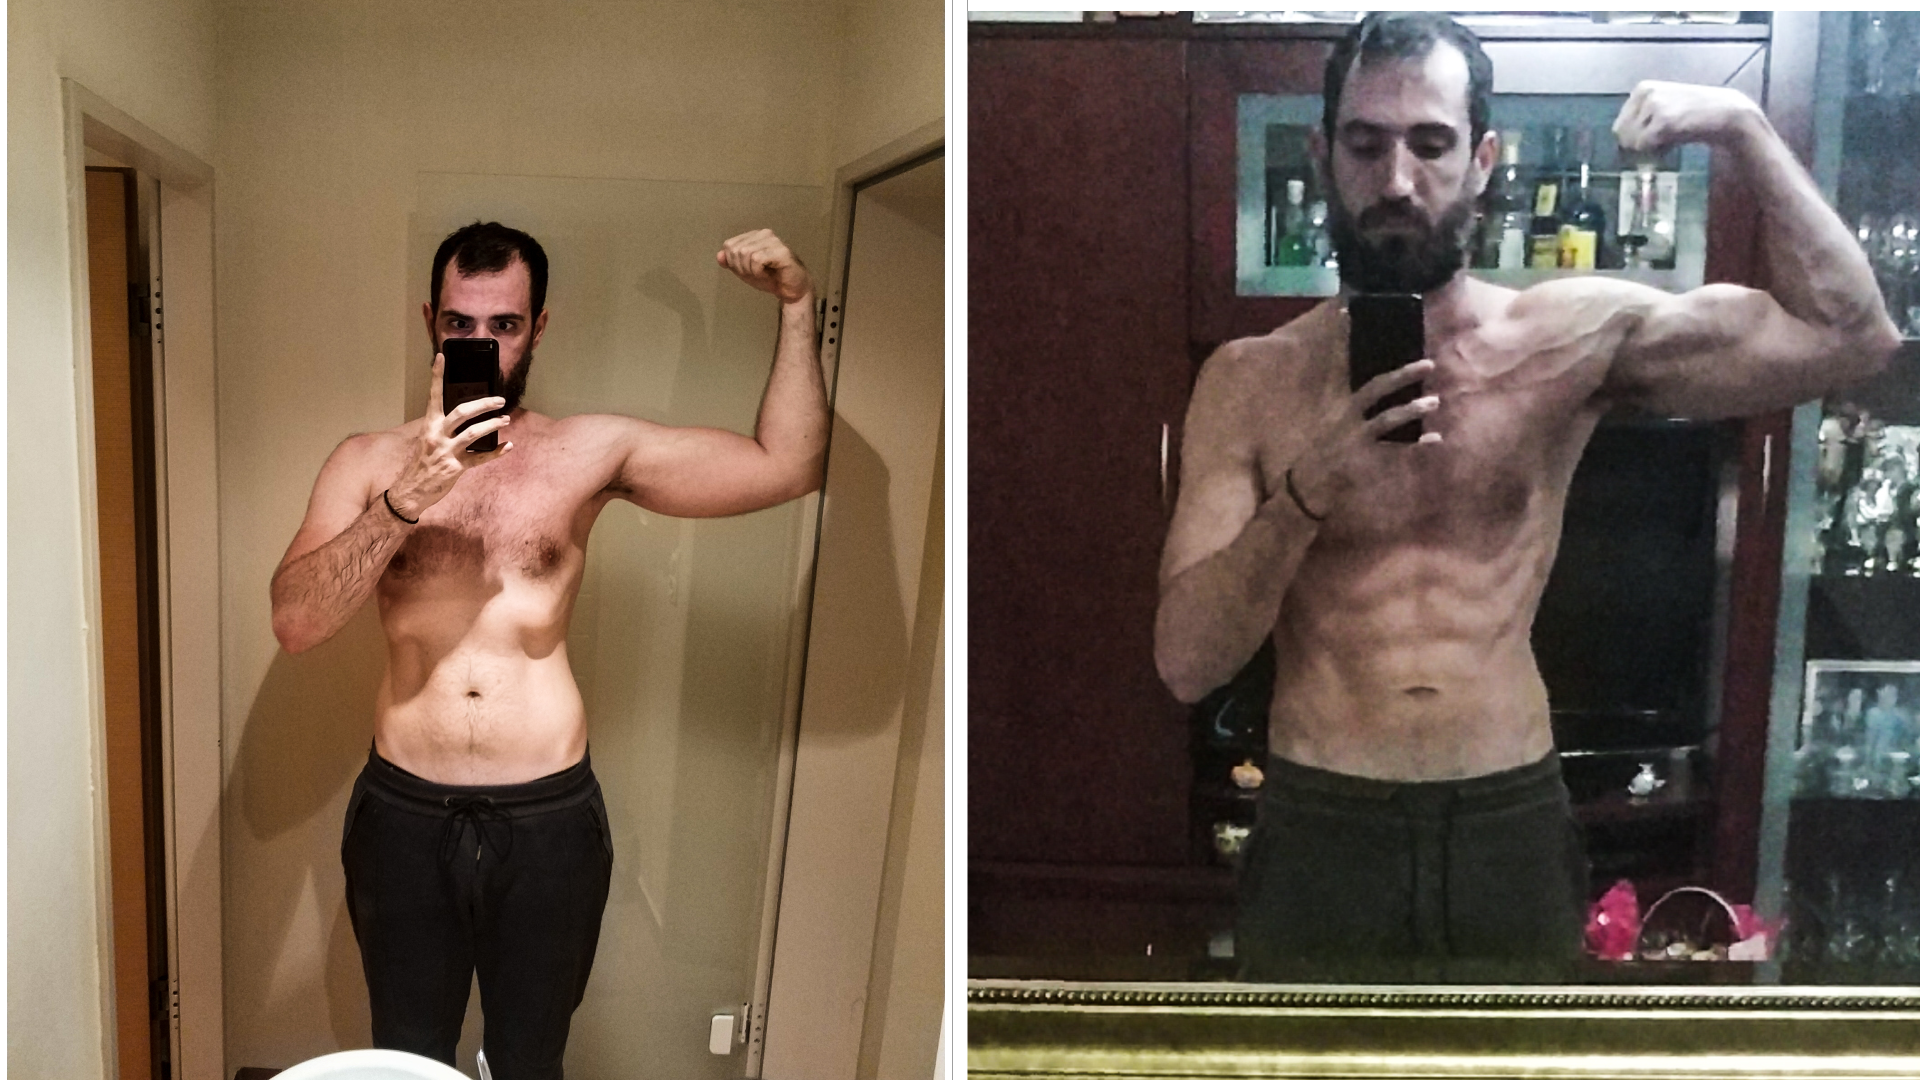 [Image] Hello to everyone, I would like to share my 1-year transformation with you, any limitation is in the mind and I hope to motivate you.